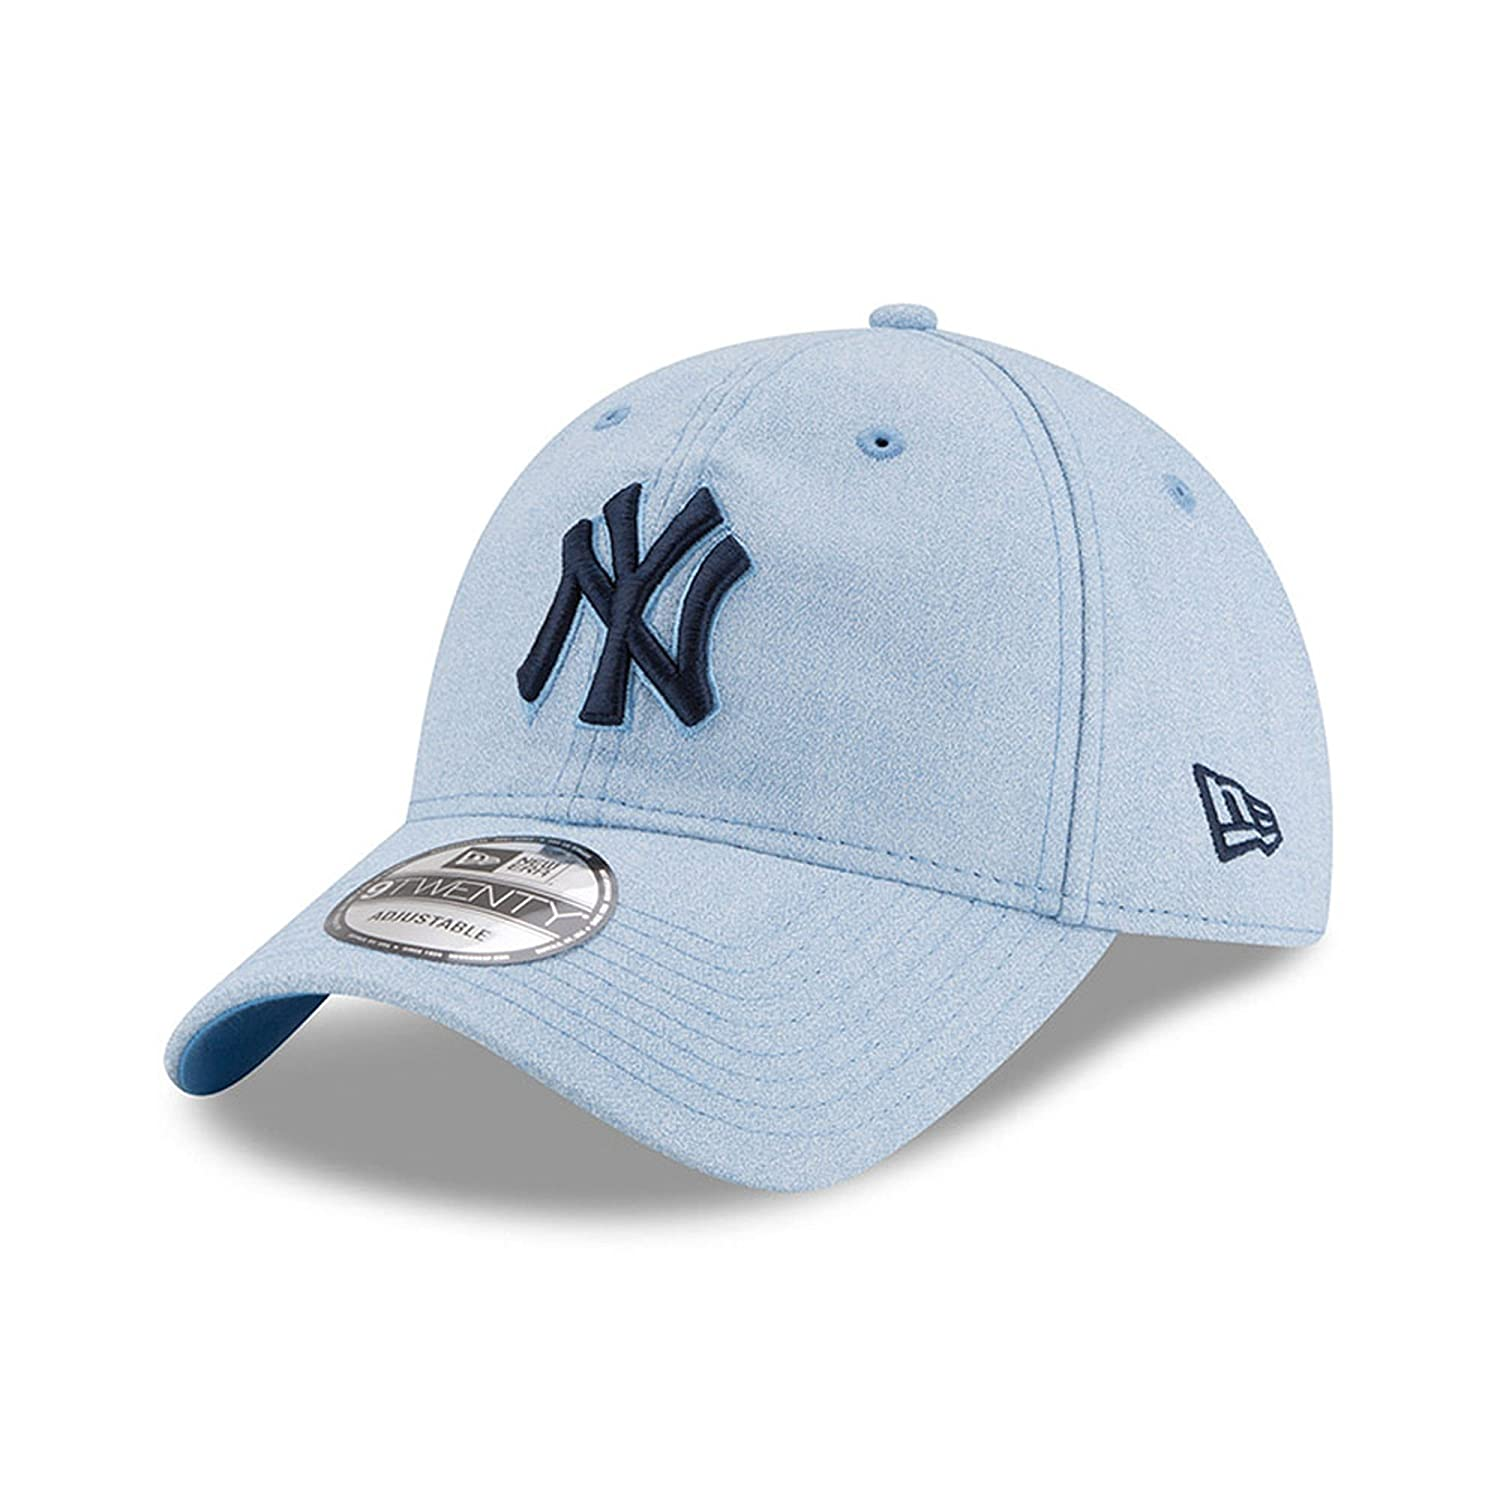 97a7e33c25ac7 Amazon.com   New Era New York Yankees 2018 Father s Day 9TWENTY Adjustable  Hat - Light Blue   Sports   Outdoors